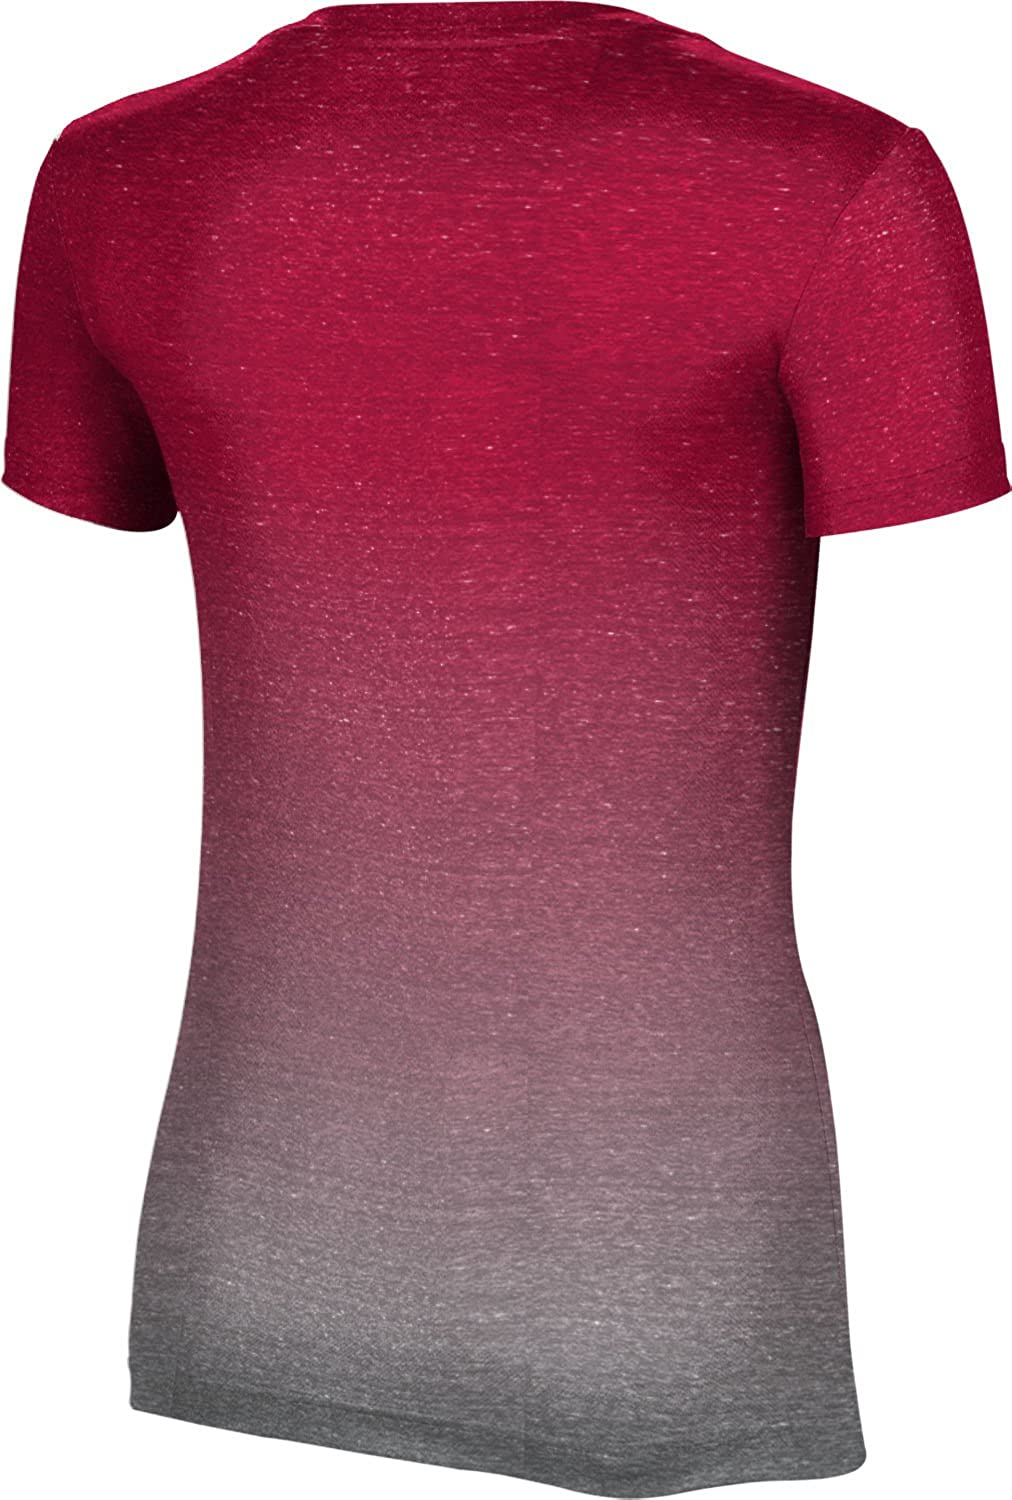 ProSphere University of South Dakota Girls Performance T-Shirt Ombre